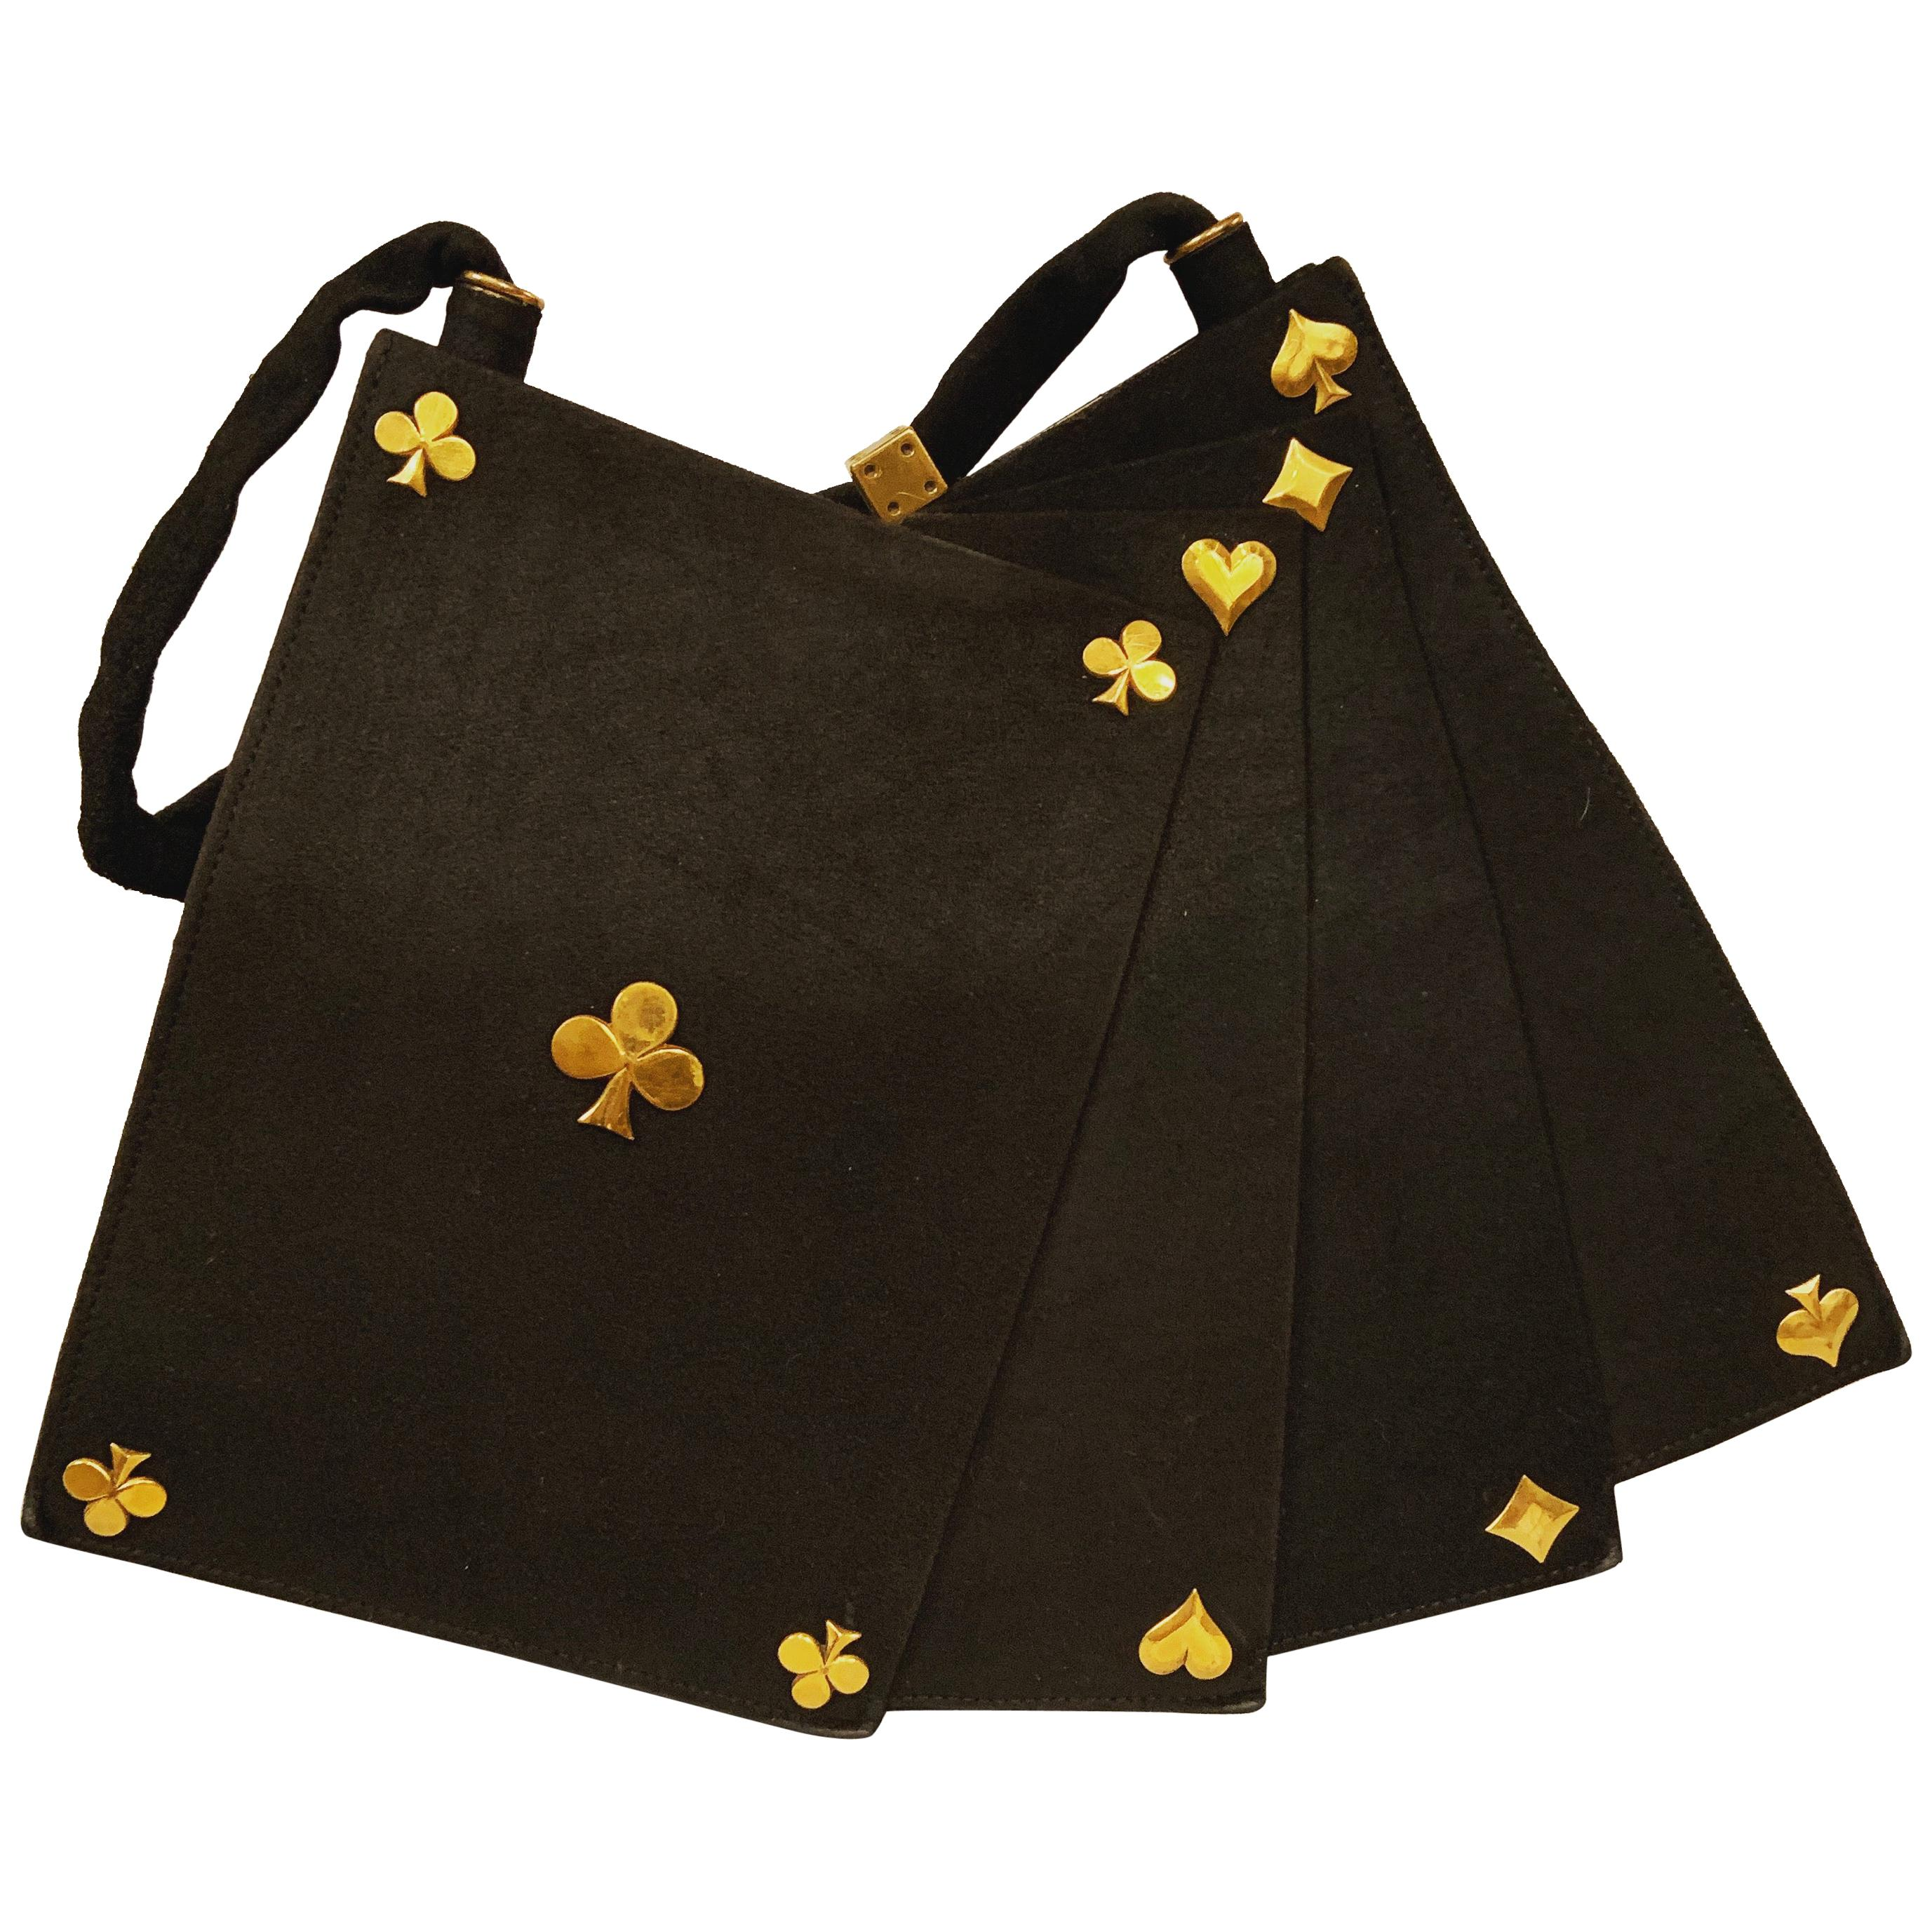 3b37f08252ccc Vintage and Designer Novelty Bags - 436 For Sale at 1stdibs